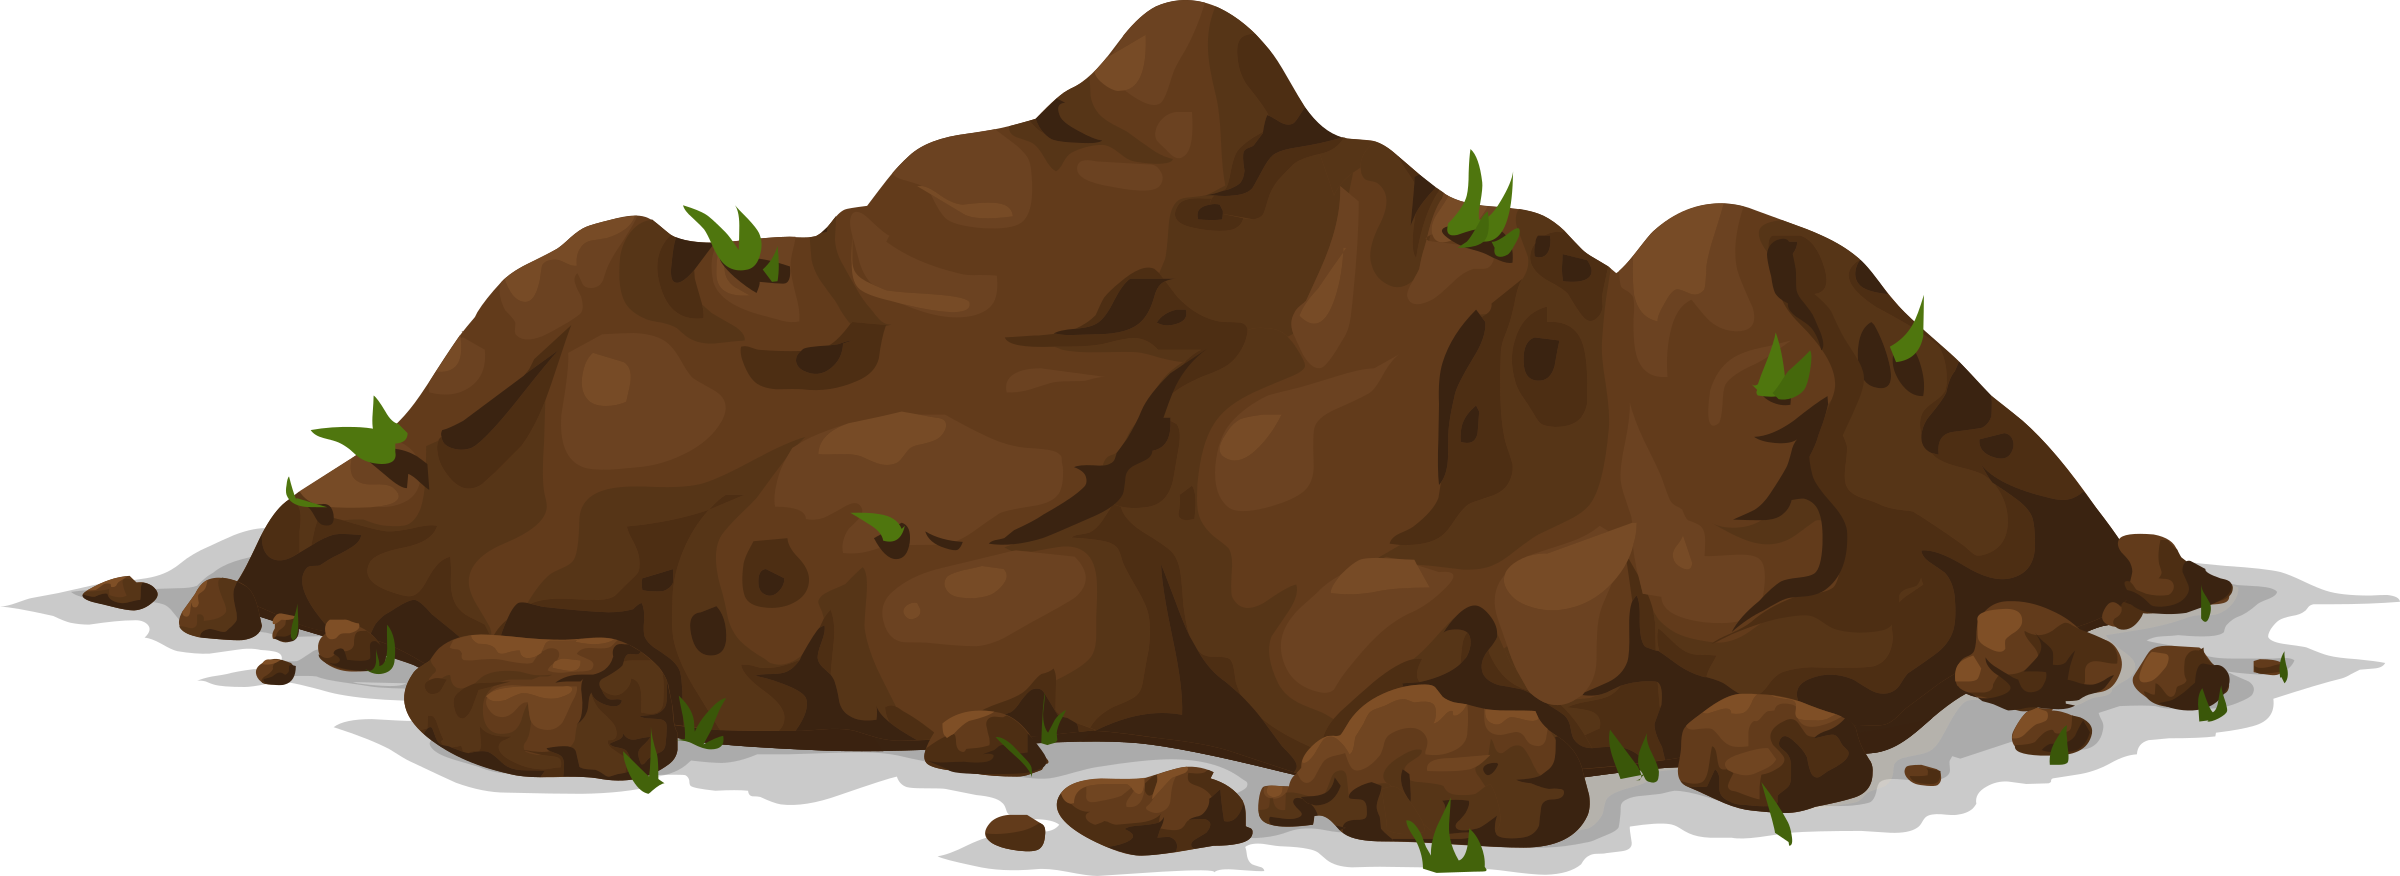 Misc Proto Dirt Pile by glitch